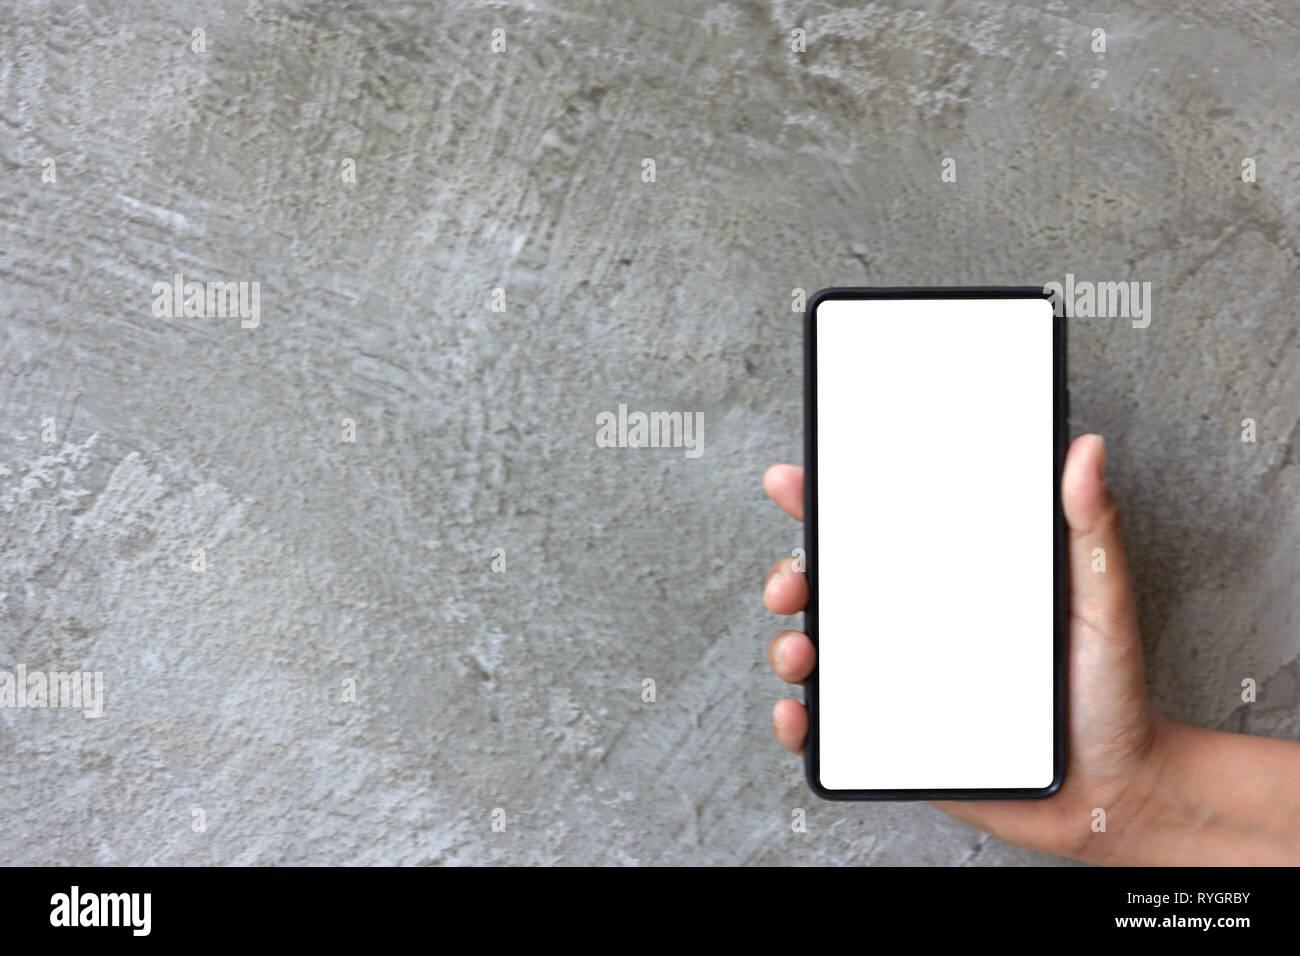 Asian woman hand hold moblie phone on grey cement background Stock Photo